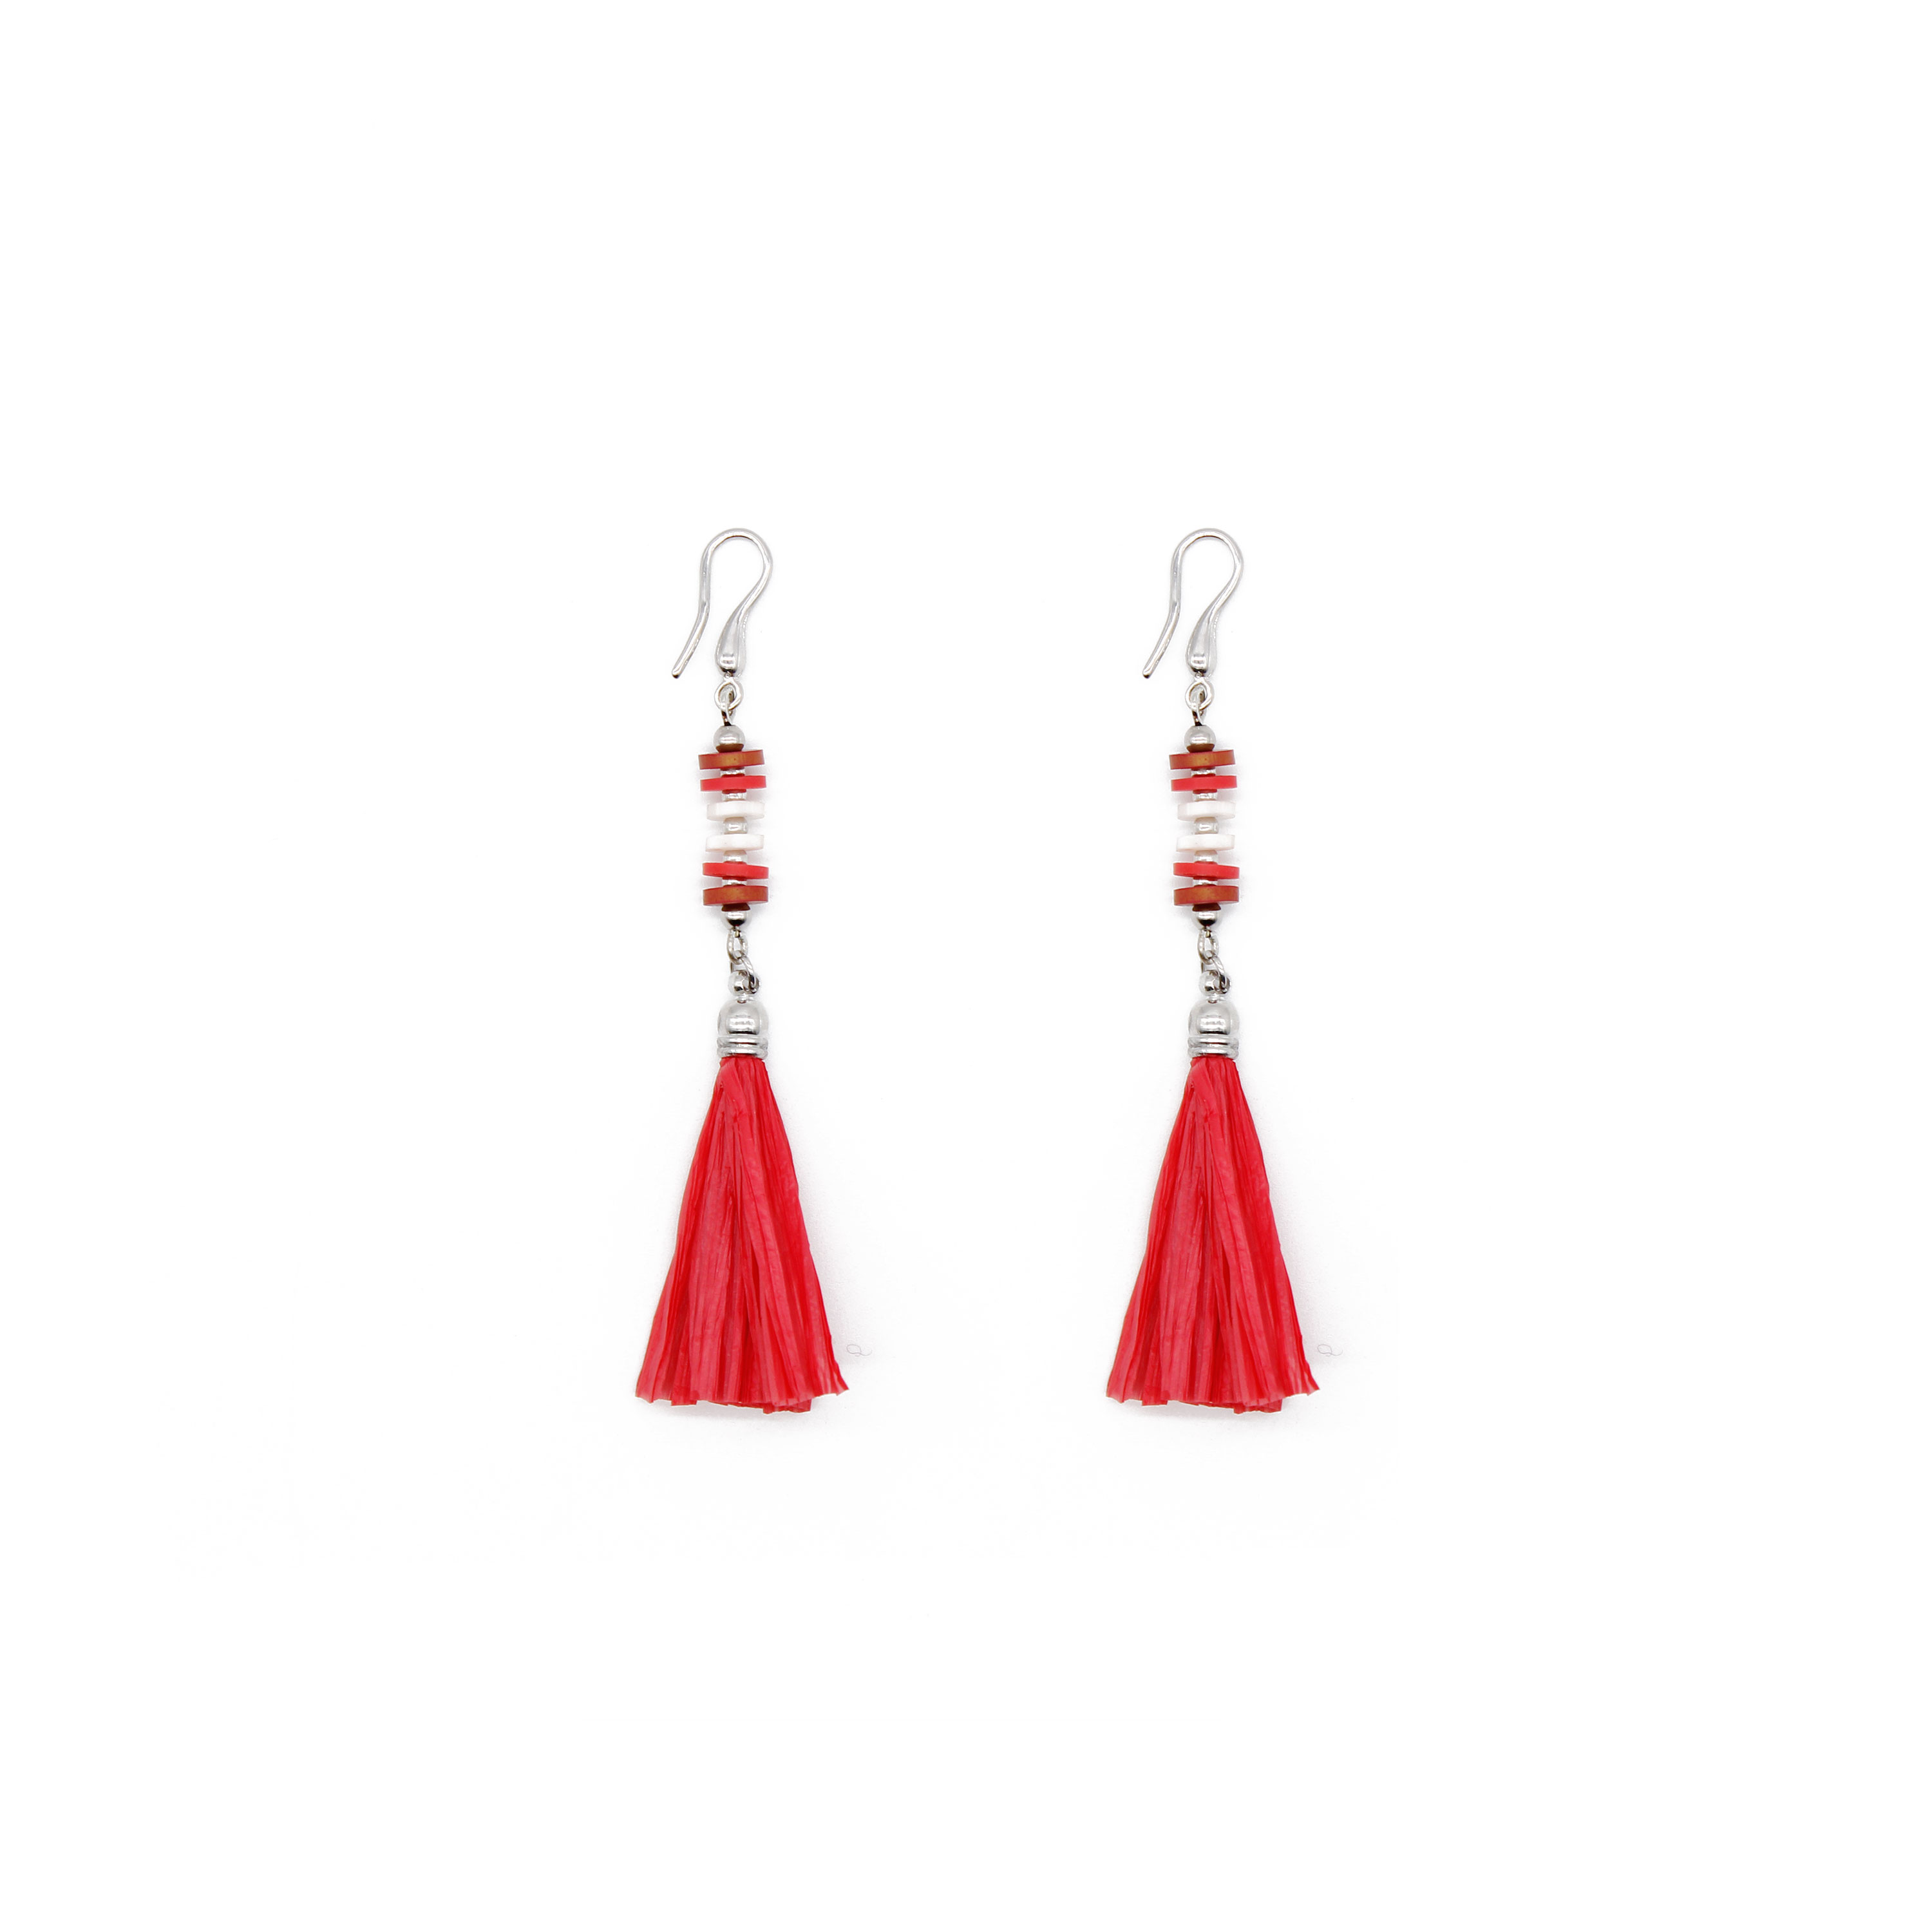 Red Style Raffia Earrings with Copper Parts and Ring